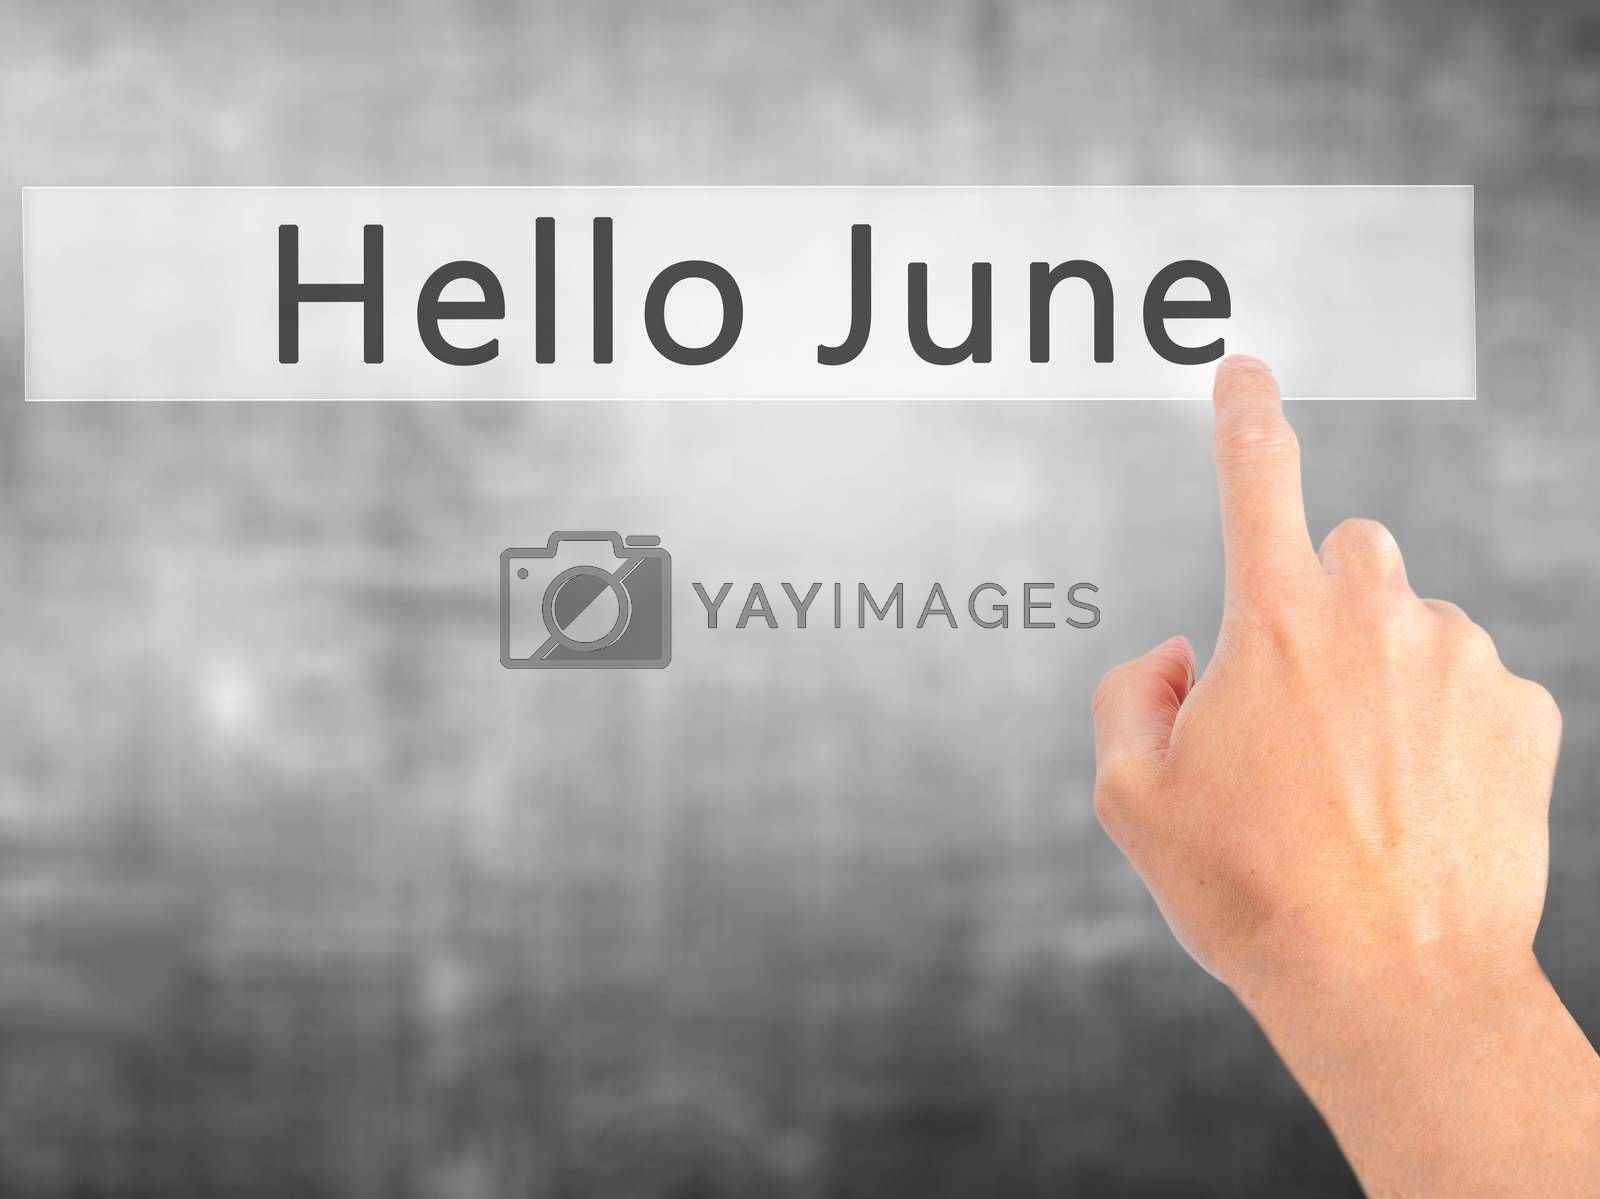 Hello June - Hand pressing a button on blurred background concep by netsay.net